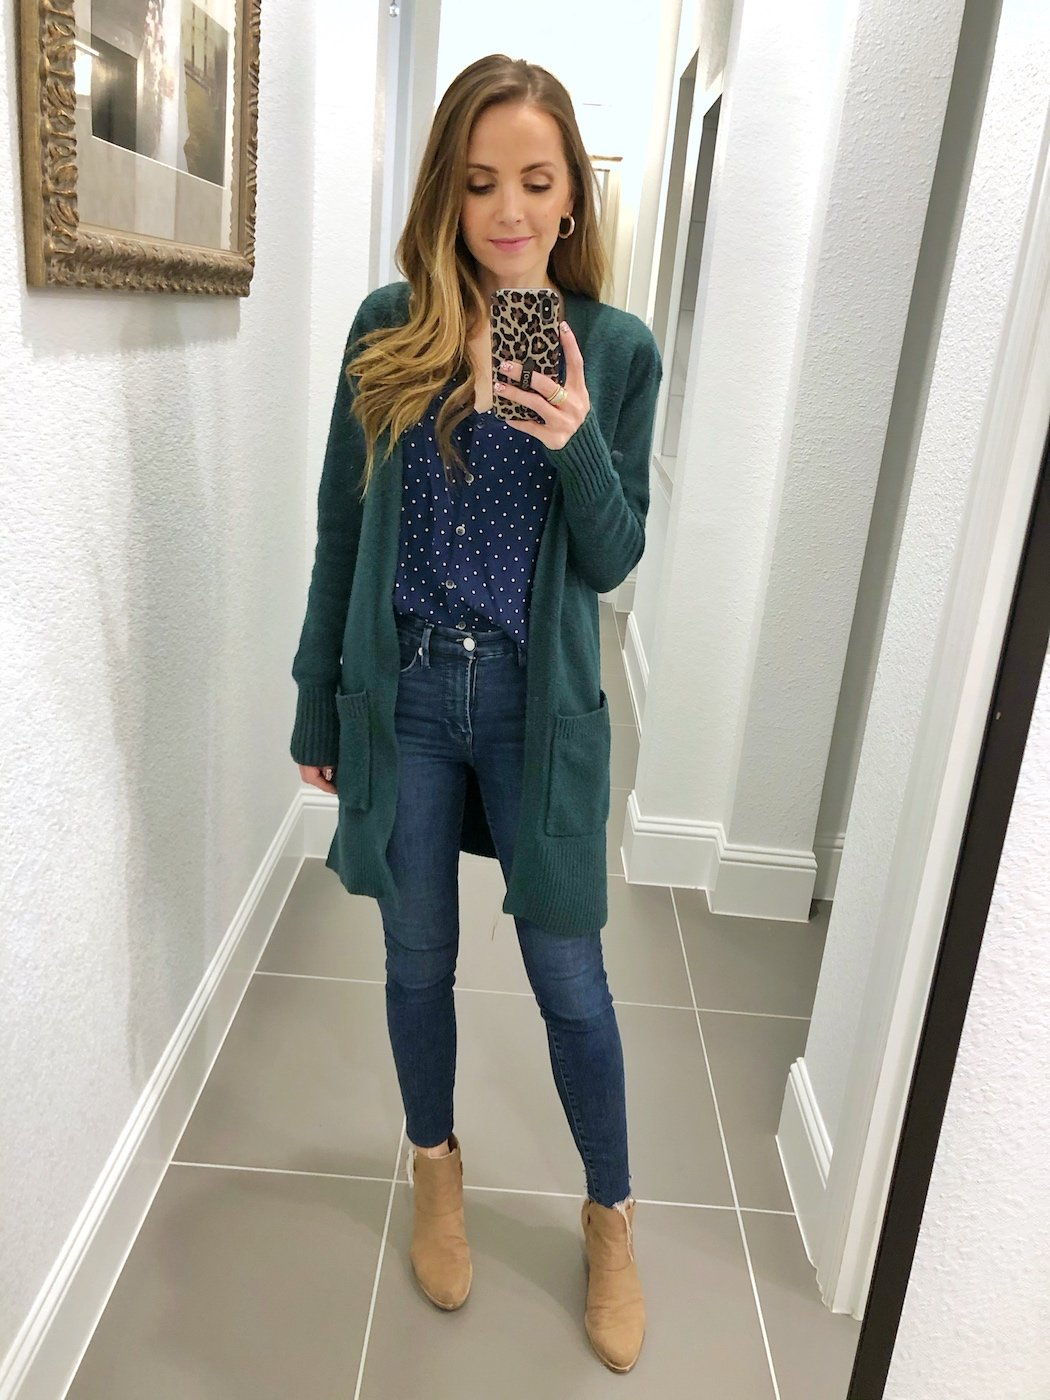 cardigan outfits with jeans and a blouse